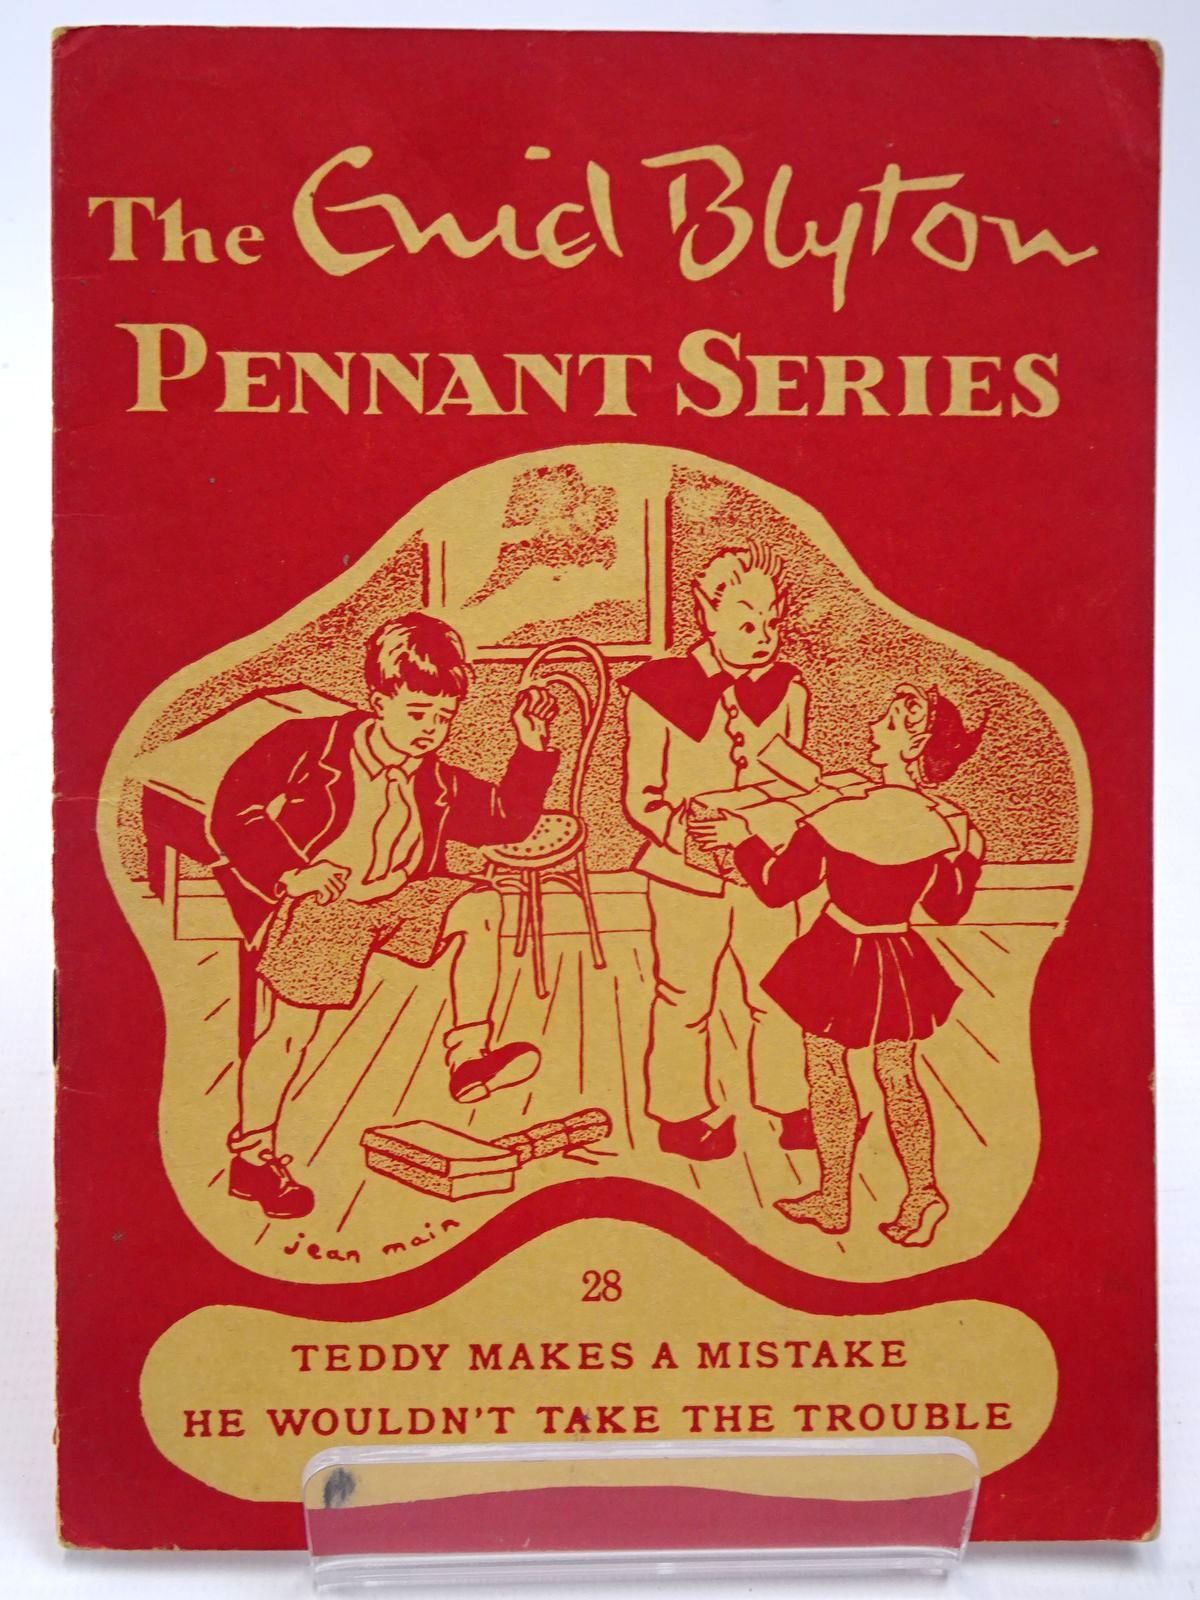 Photo of THE ENID BLYTON PENNANT SERIES No. 28 TEDDY MAKES A MISTAKE / HE WOULDN'T TAKE THE TROUBLE written by Blyton, Enid illustrated by Soper, Eileen Main, Jean published by Macmillan & Co. Ltd. (STOCK CODE: 2130526)  for sale by Stella & Rose's Books